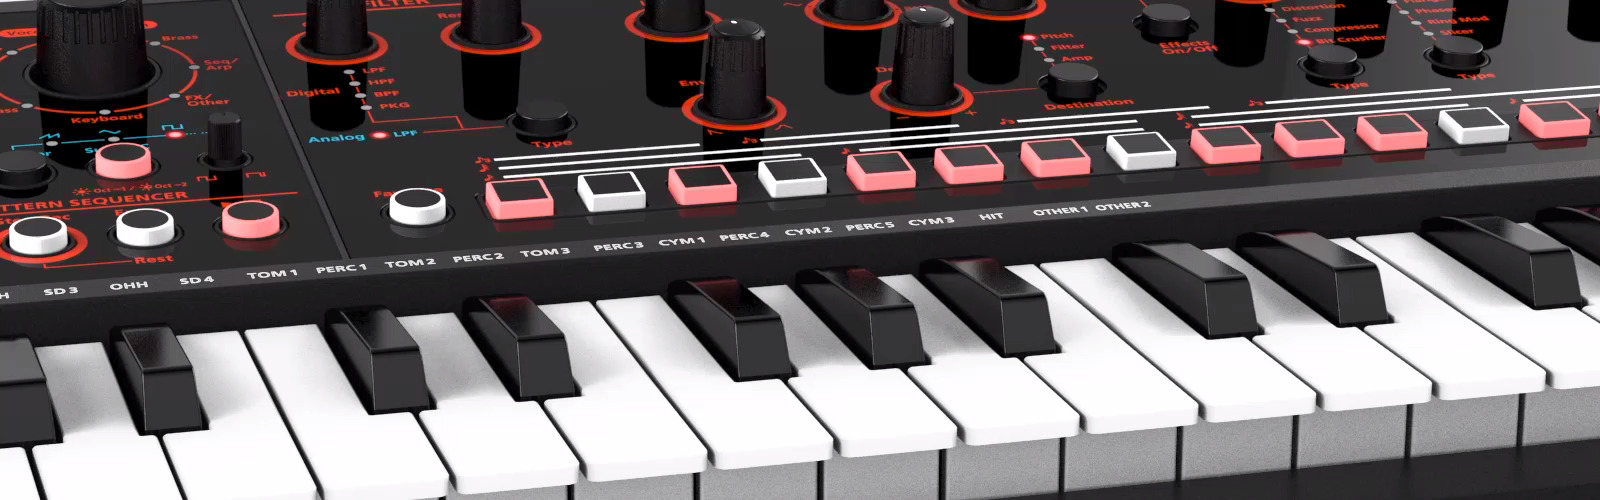 Roland JD-Xi Interactive Analog/Digital Crossover